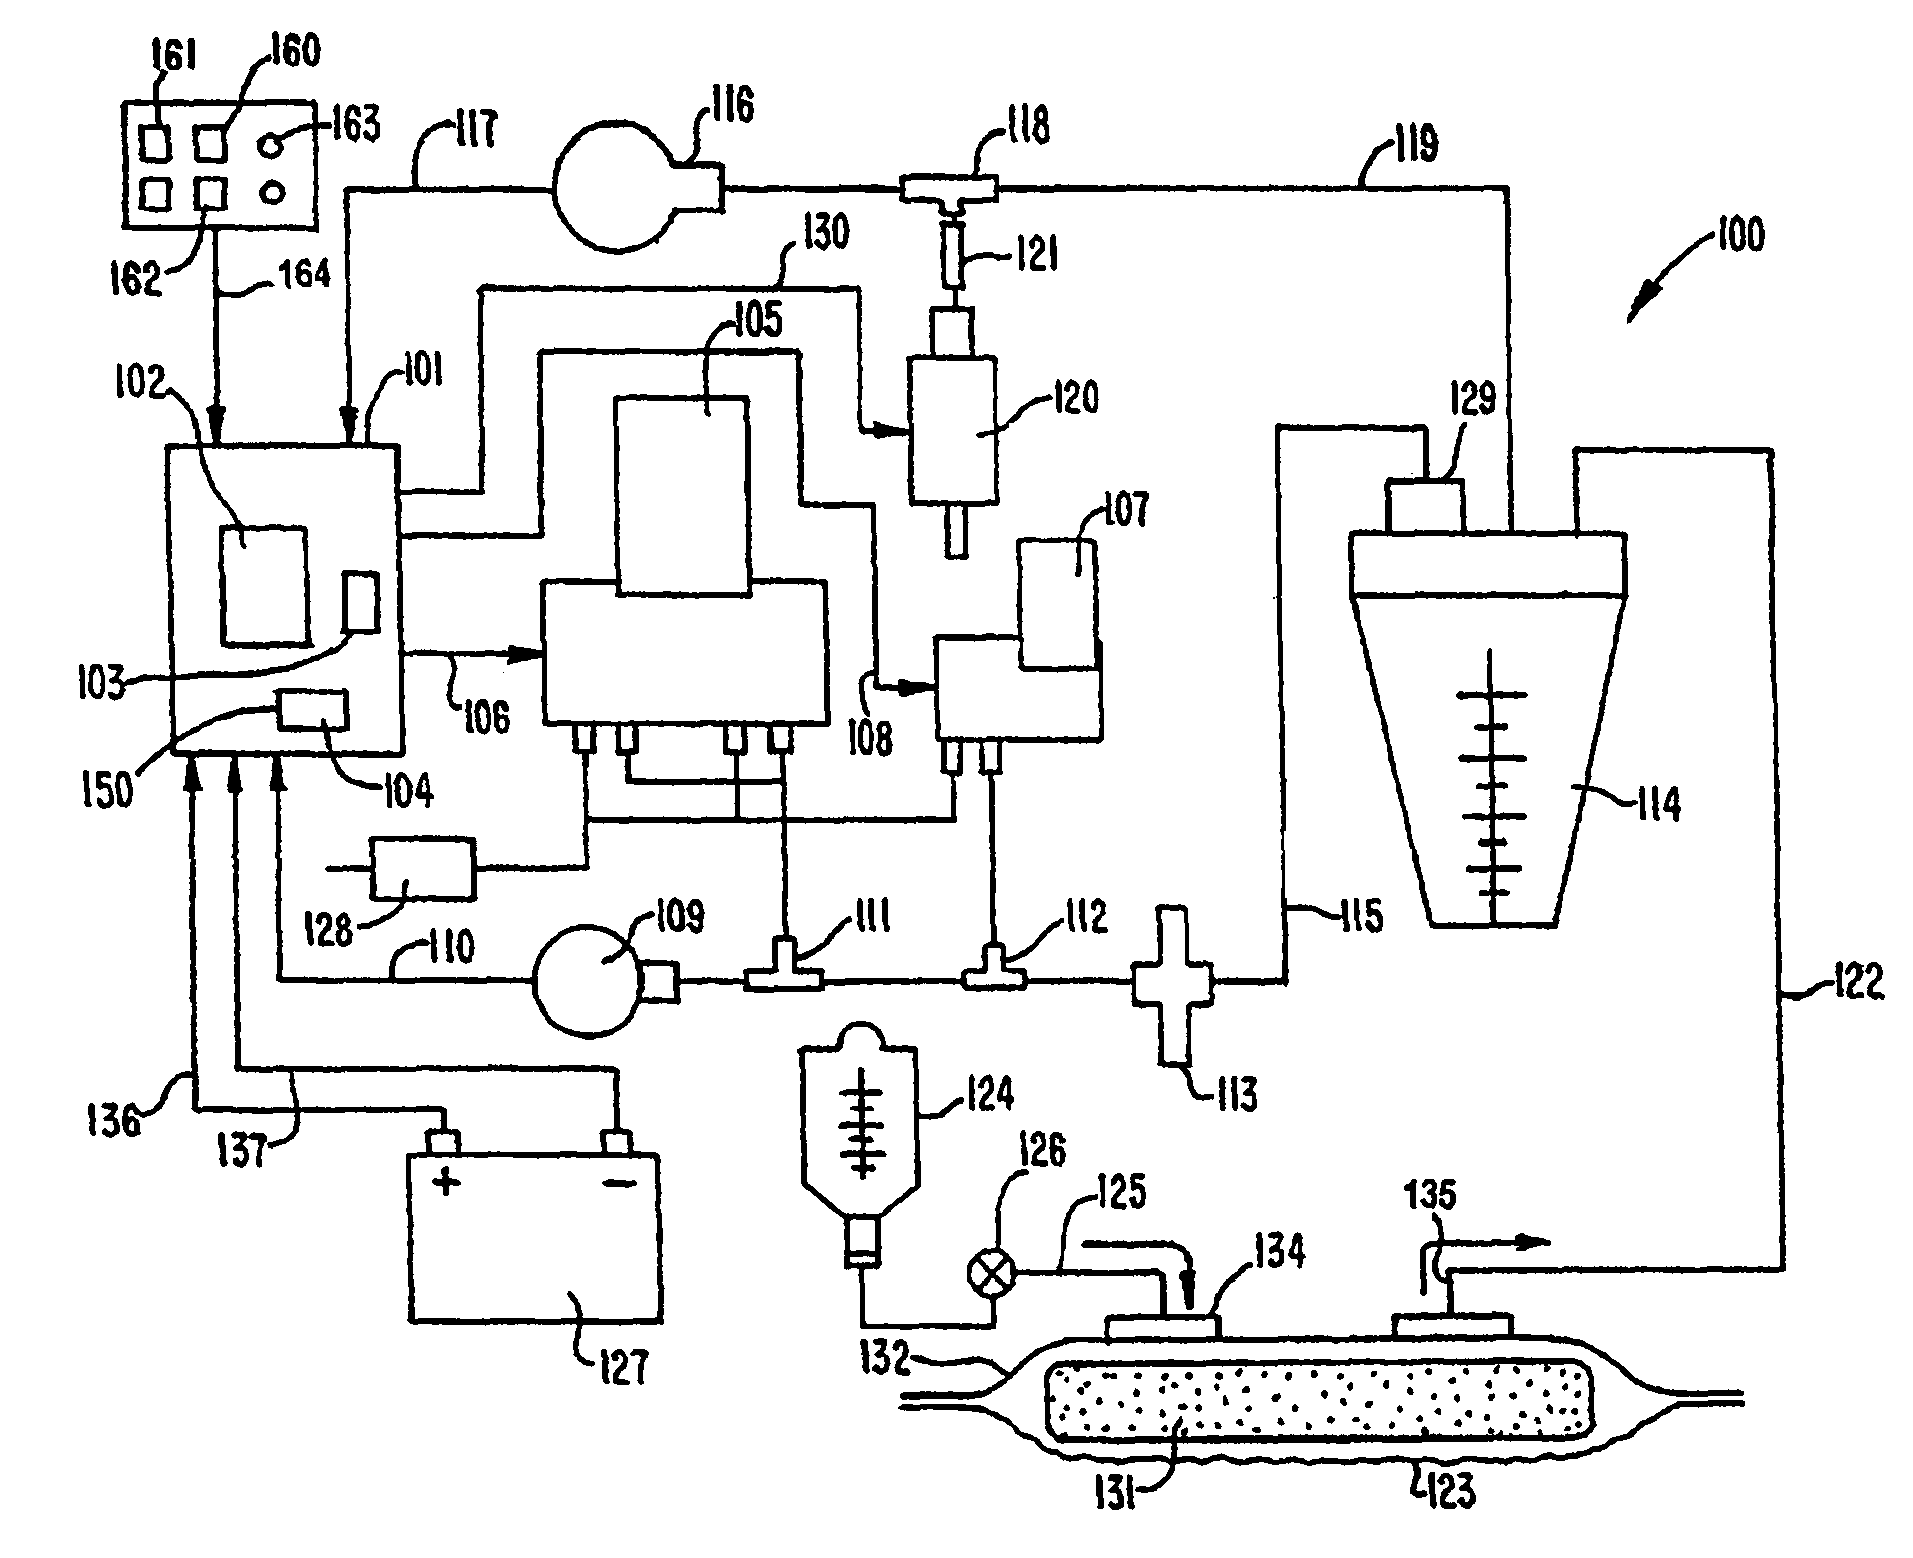 Orbit Sprinkler Systems Wiring Diagram Electrical Diagrams Solenoid System Solutions Richdel Valve Captivating Timer